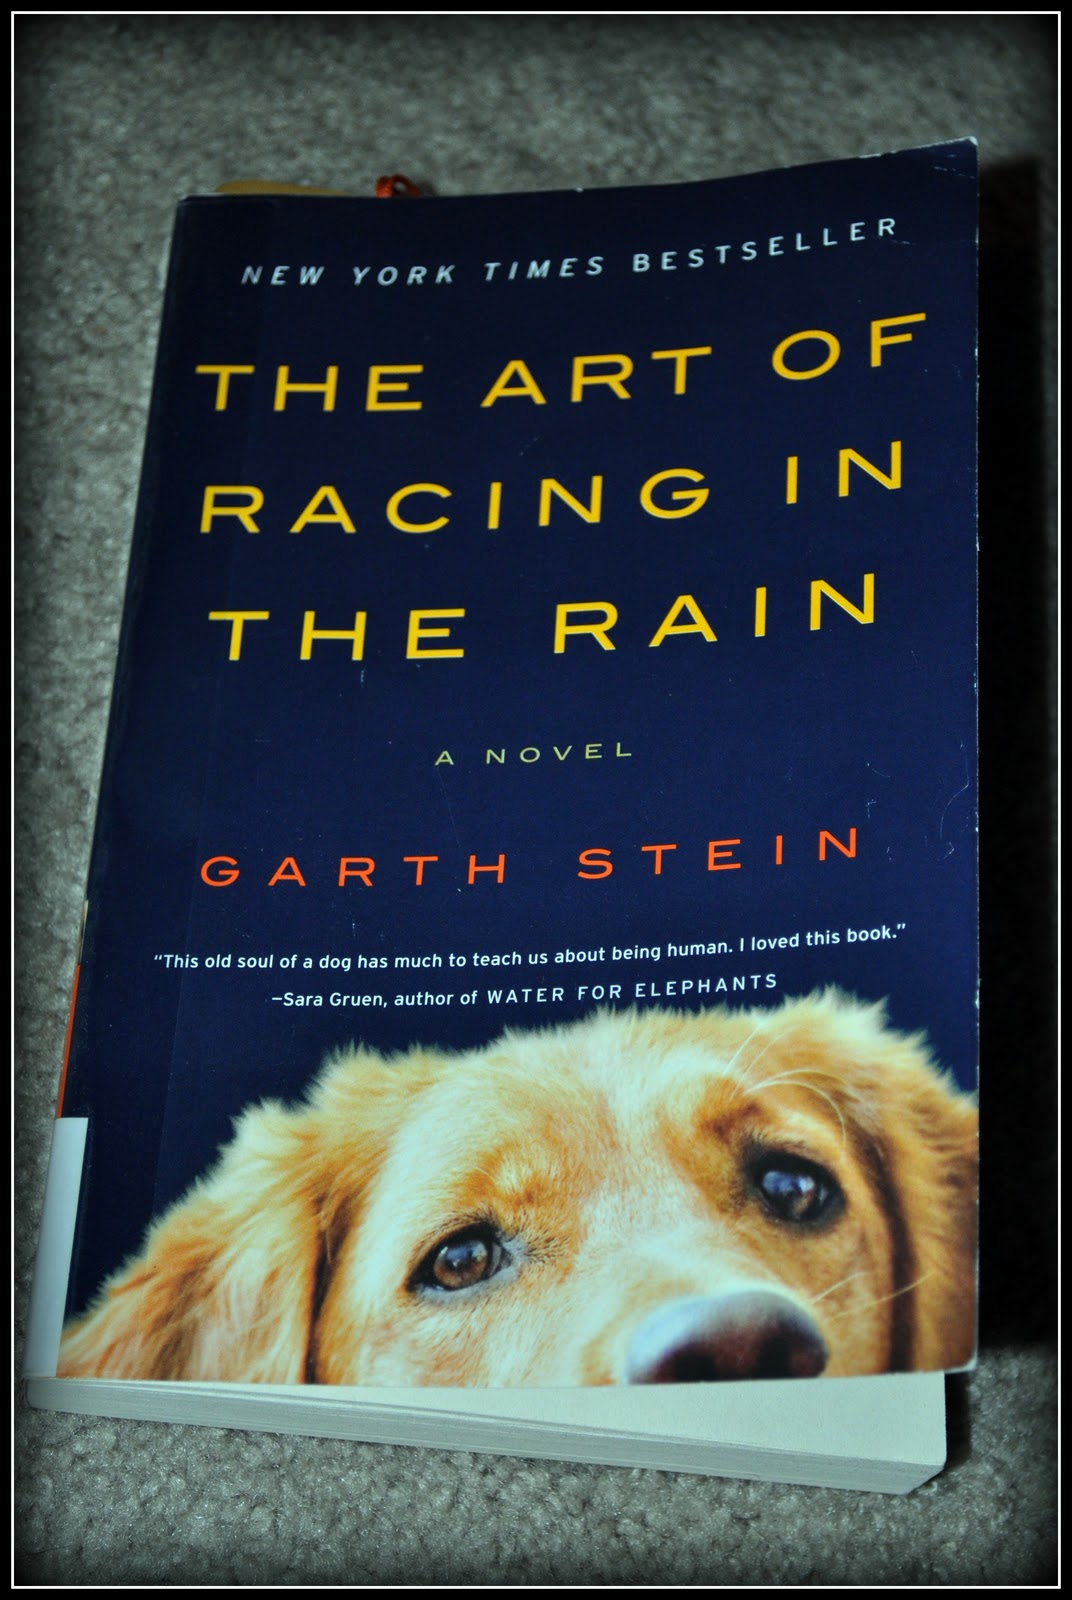 The Art Of Racing In The Rain: The Mermaid Chair & Art Of Racing In The Rain